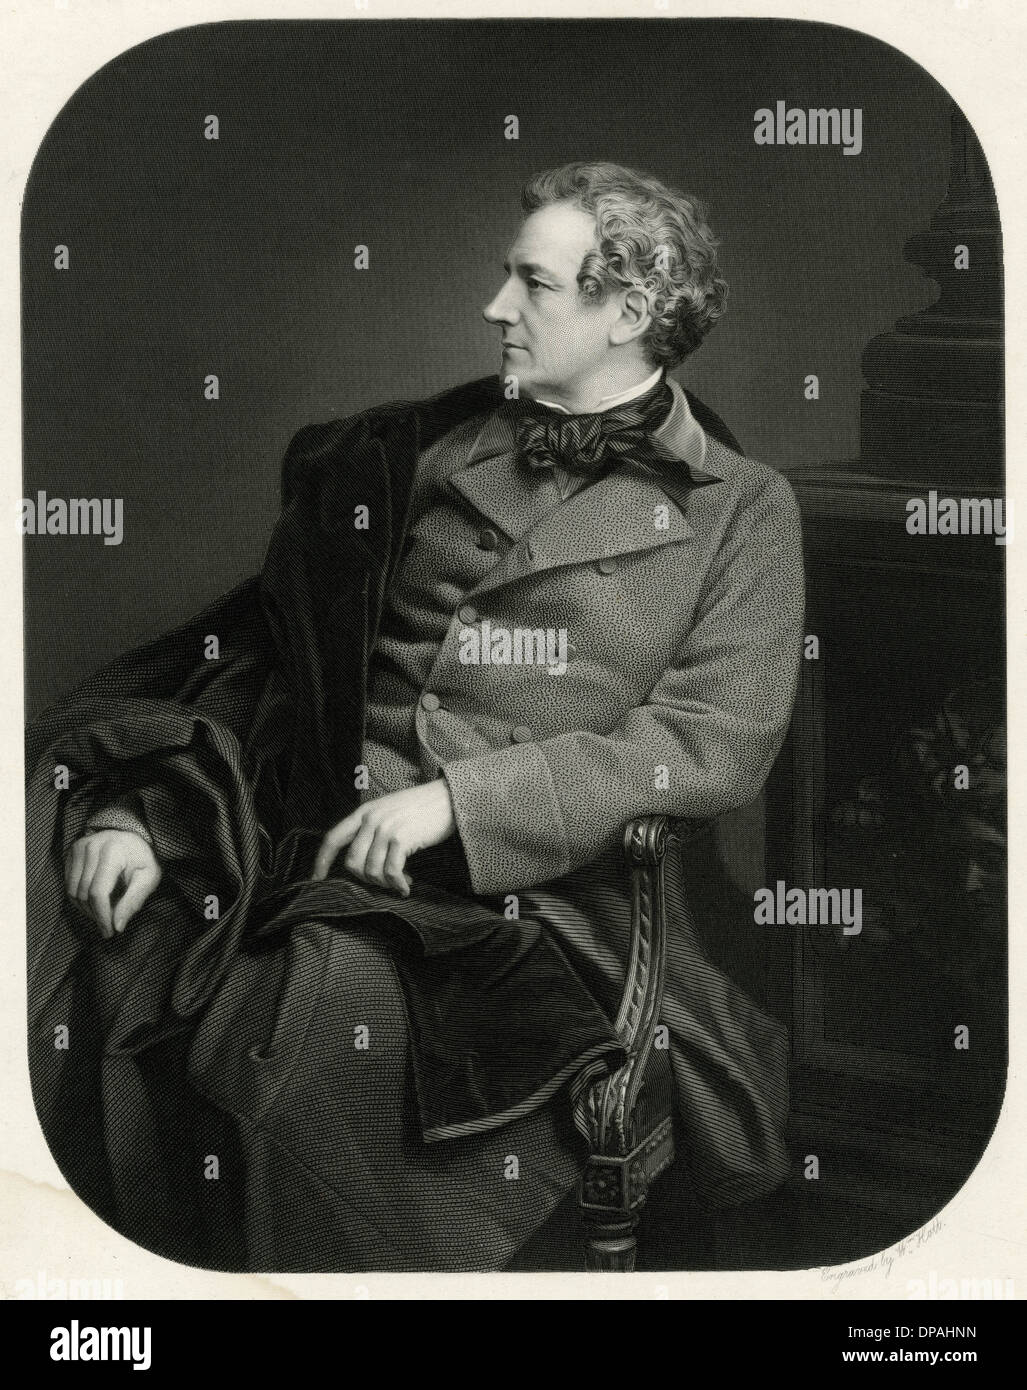 William Alexander Anthony Archibald 11TH DUKE OF HAMILTON Stock Photo